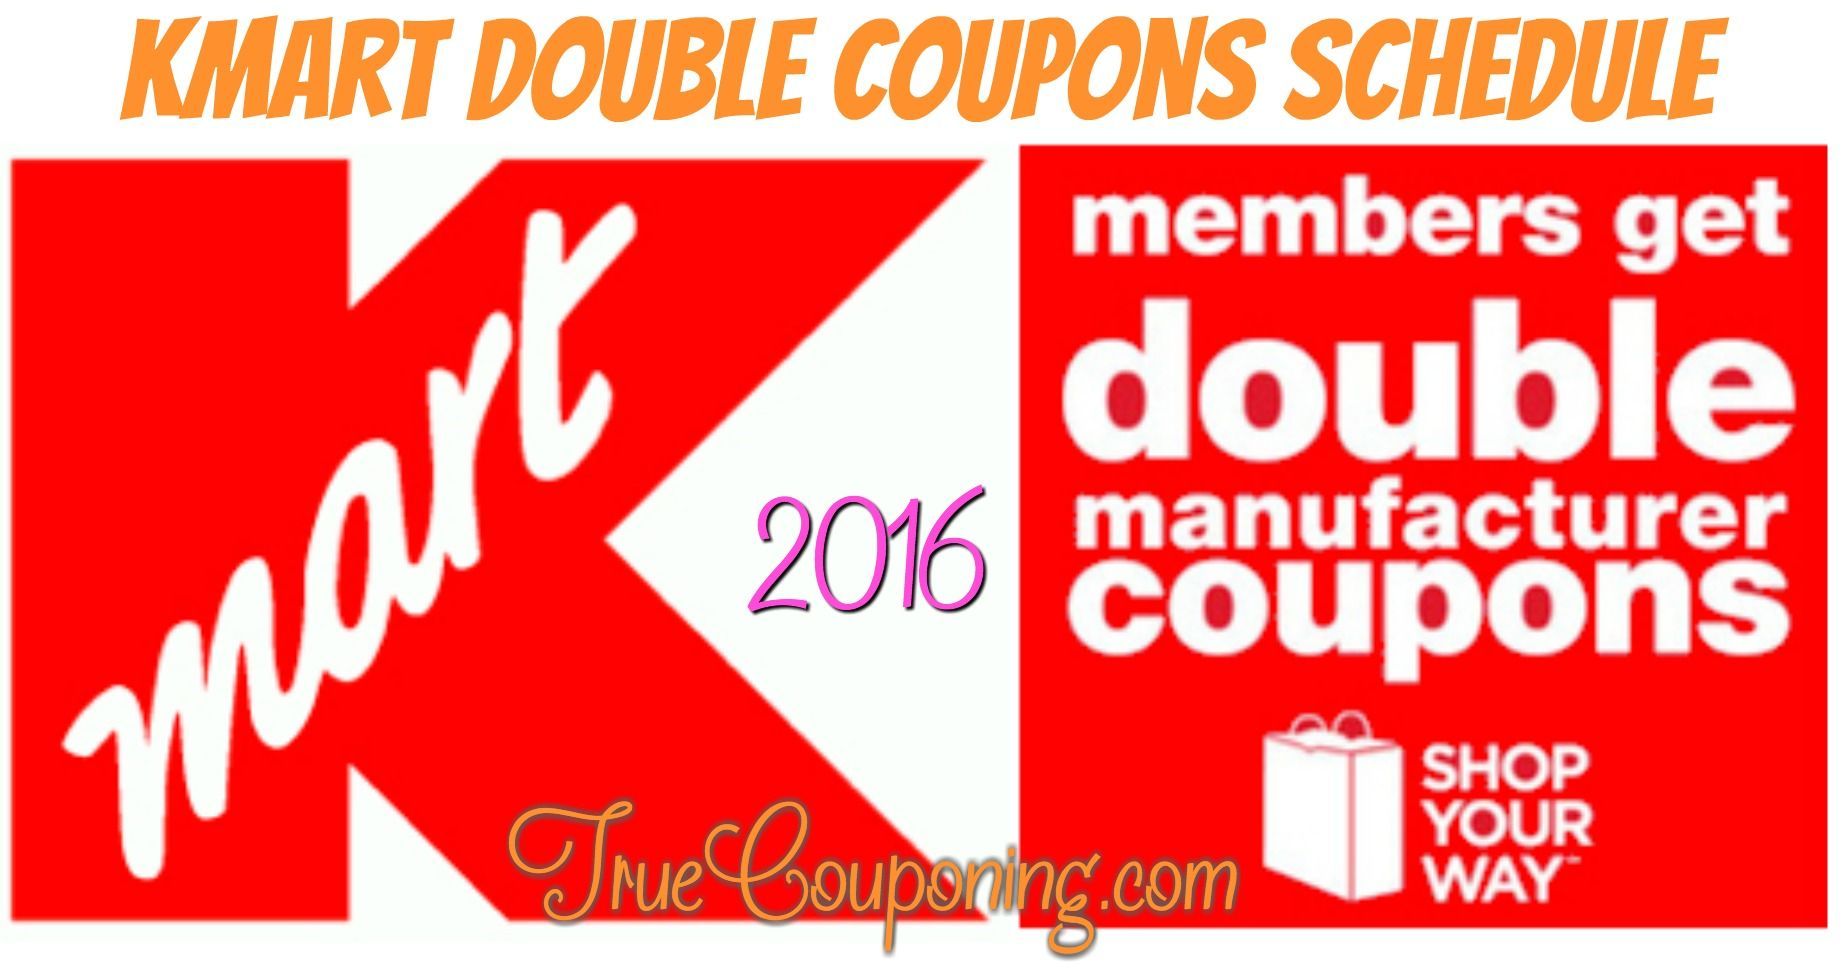 2016 kmart double coupon schedule